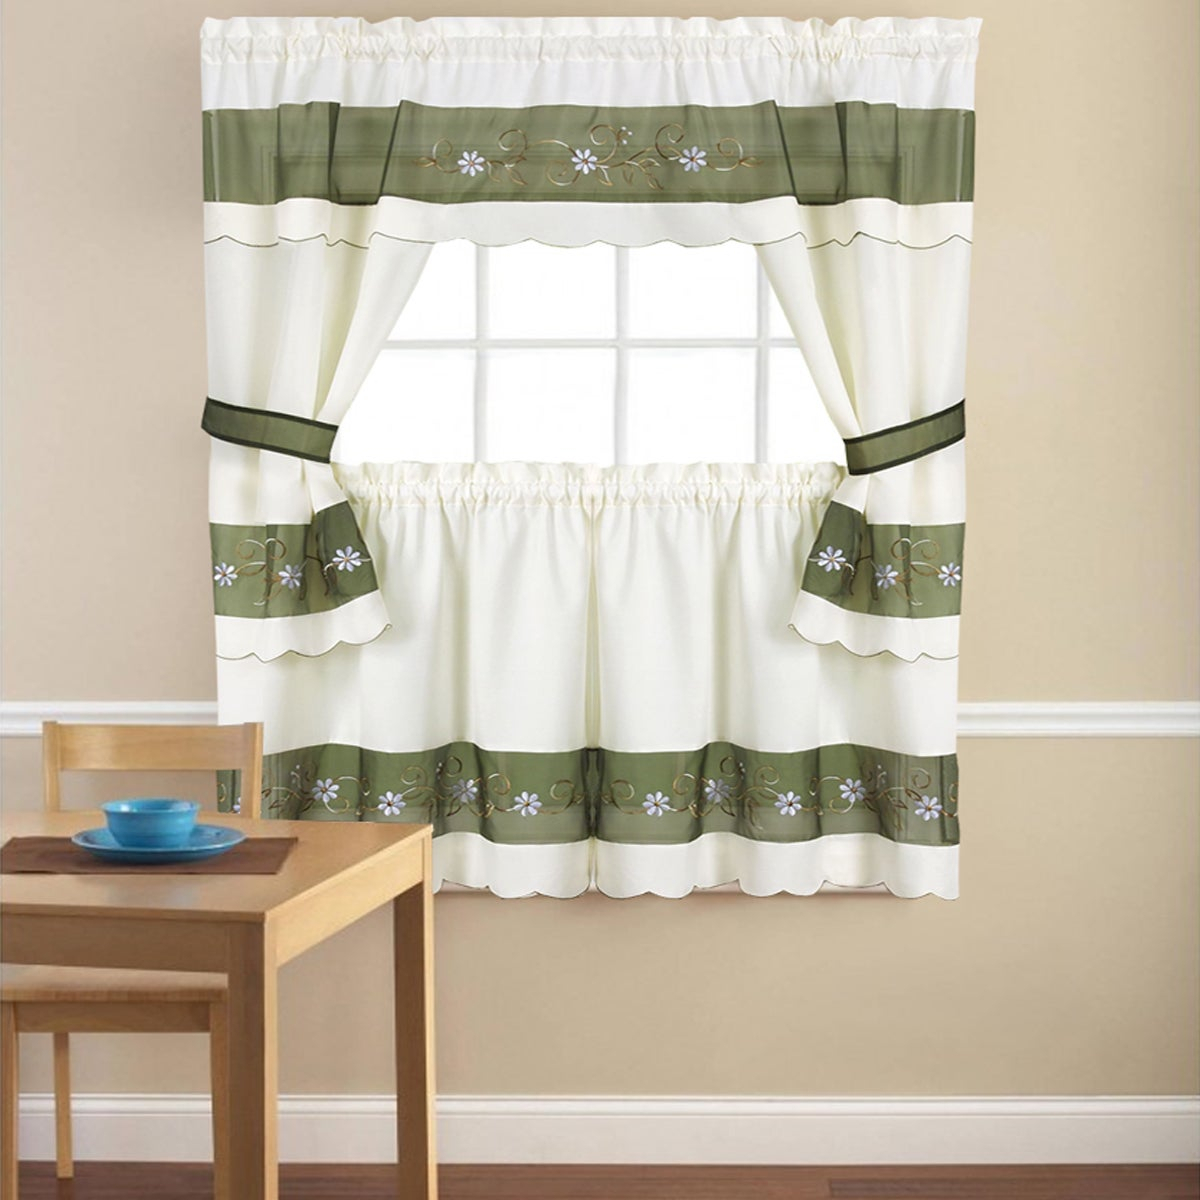 Embroidered Floral 5 Piece Kitchen Curtain Set Pertaining To Cotton Lace 5 Piece Window Tier And Swag Sets (View 3 of 20)